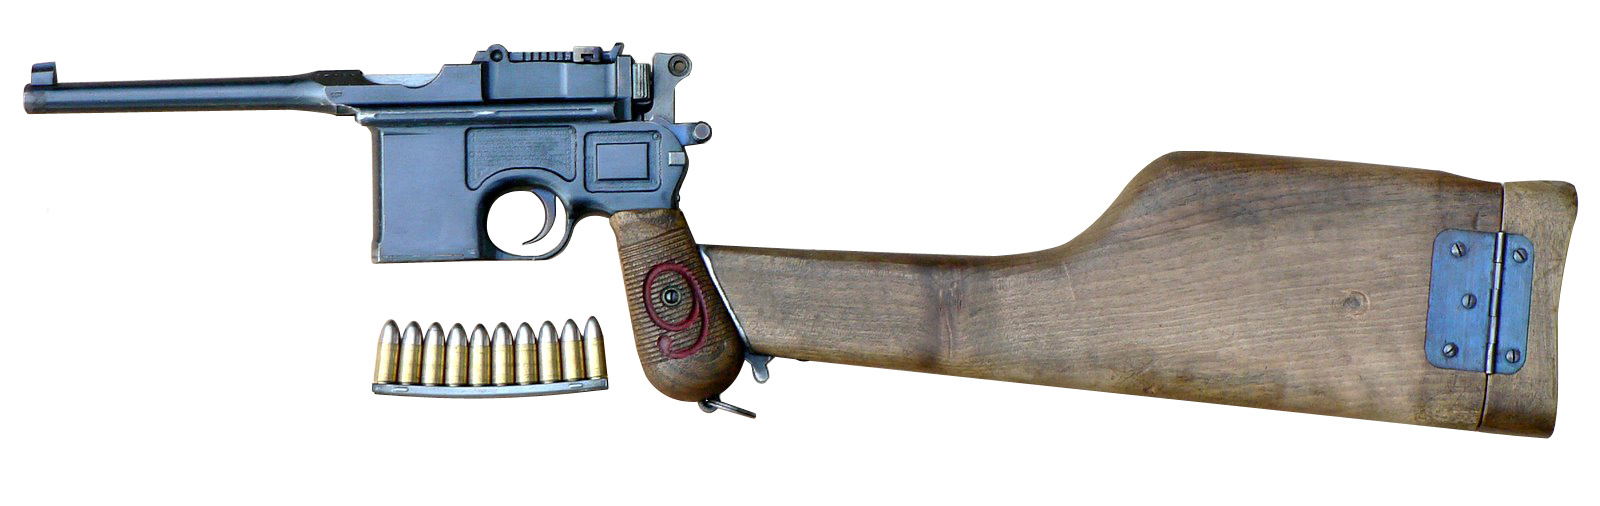 file mauser c96 m1916 red 9 7 jpg wikimedia commons